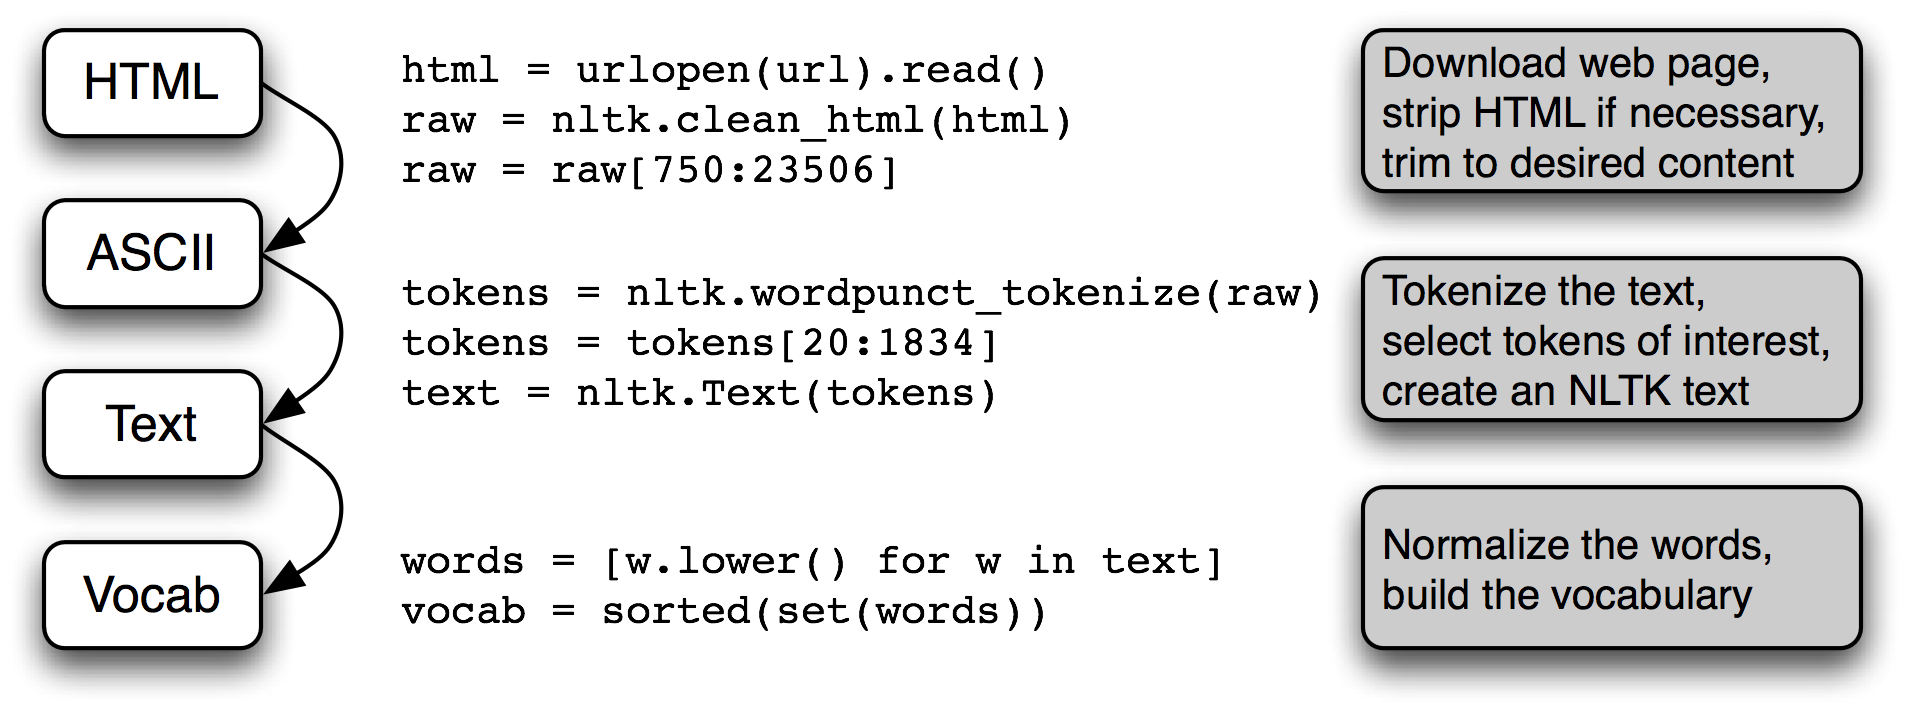 Natural Language Processing with Python and NLTK | Hael's Blog